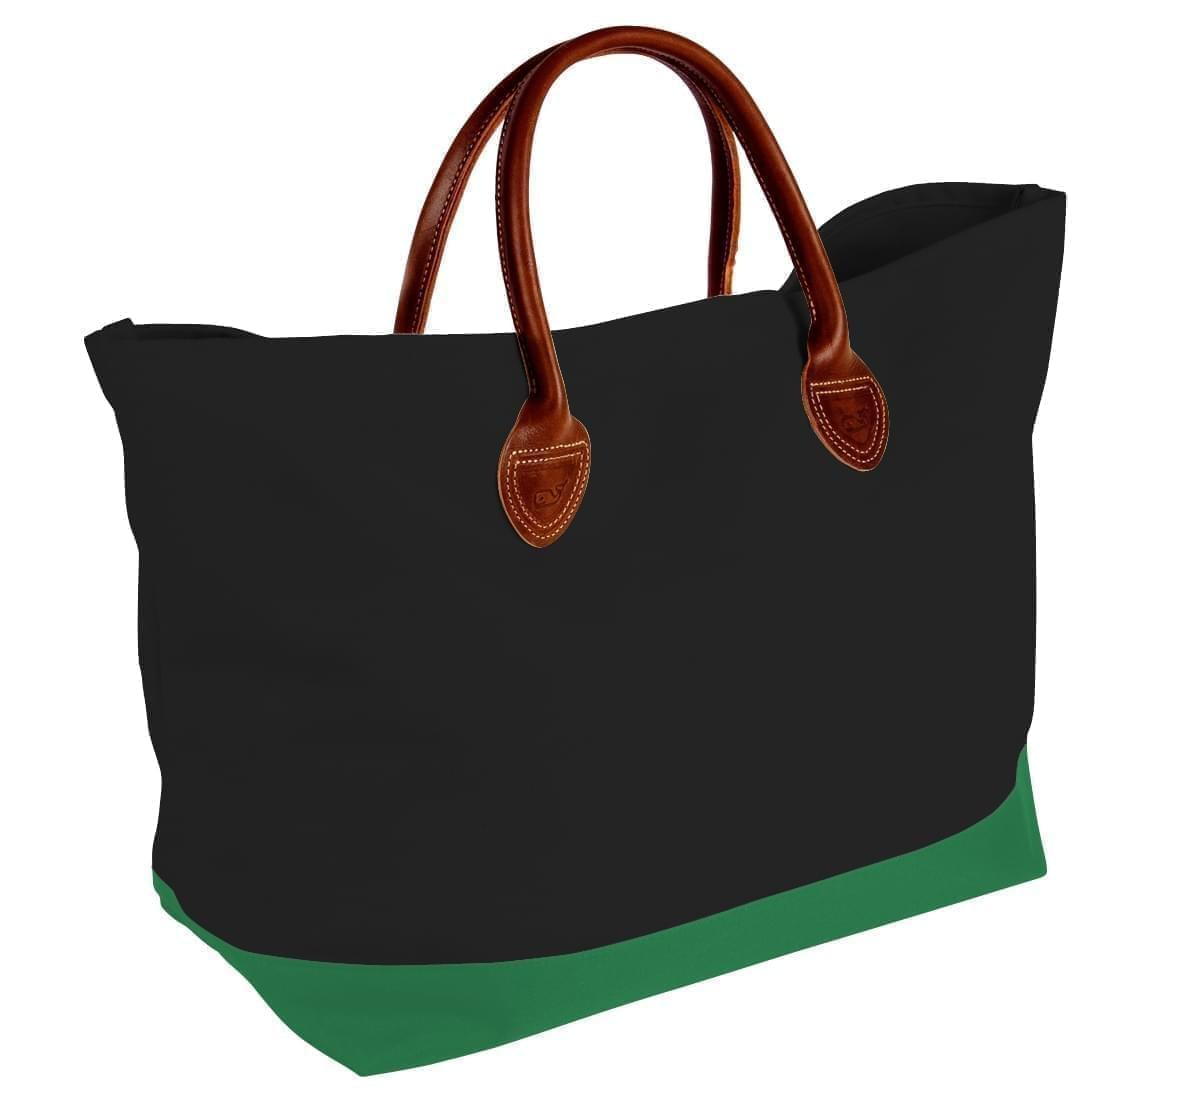 USA Made Canvas Leather Handle Totes, Black-Kelly Green, 10899-HH9